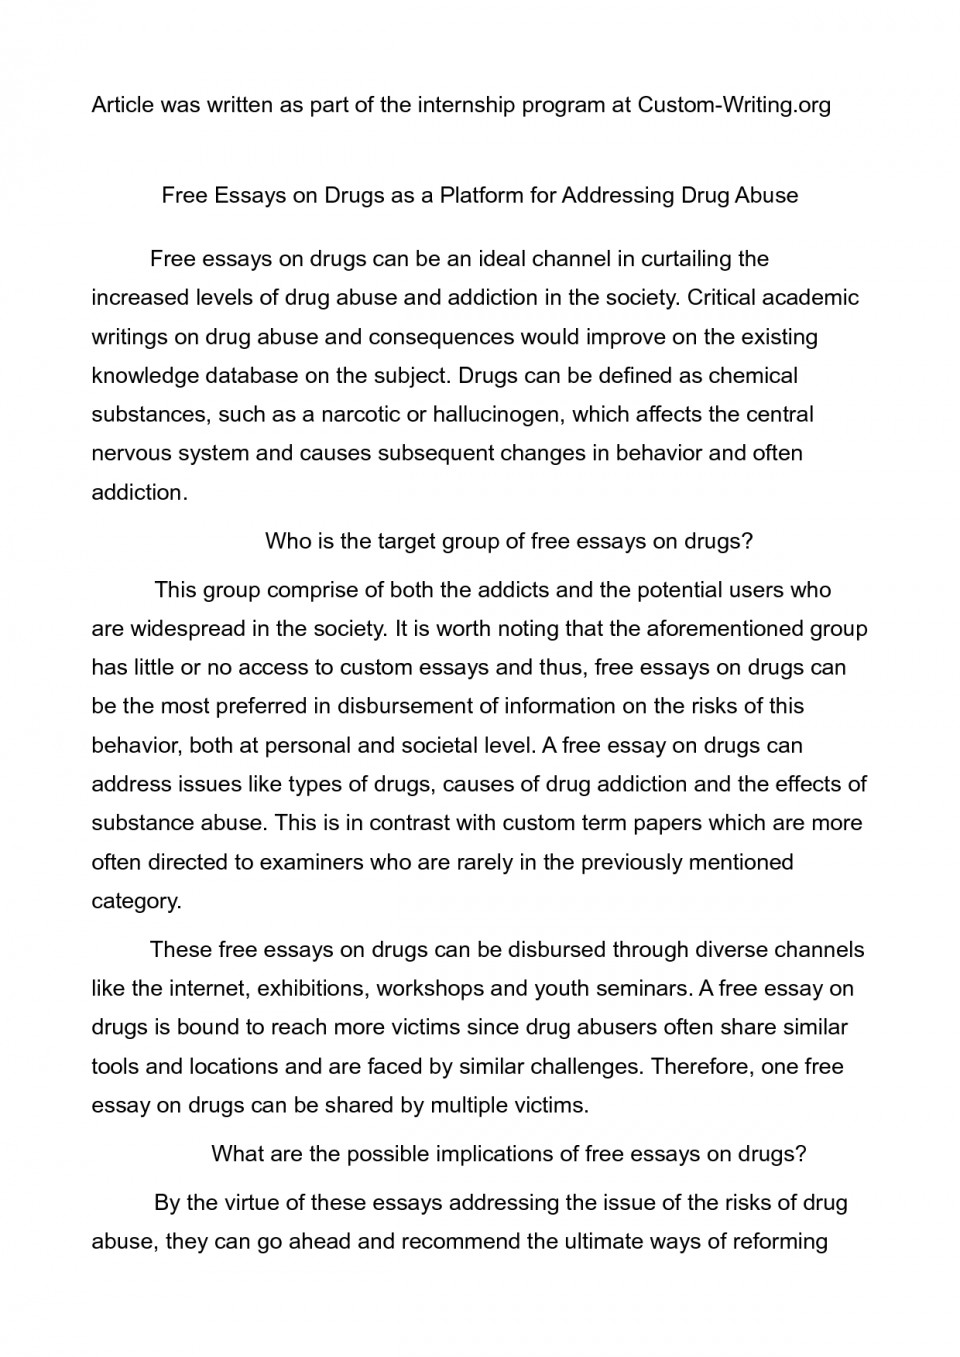 009 Argumentative Essay About Drugs Amazing Graphic Organizer College Template For Middle School Format 9th Grade 960